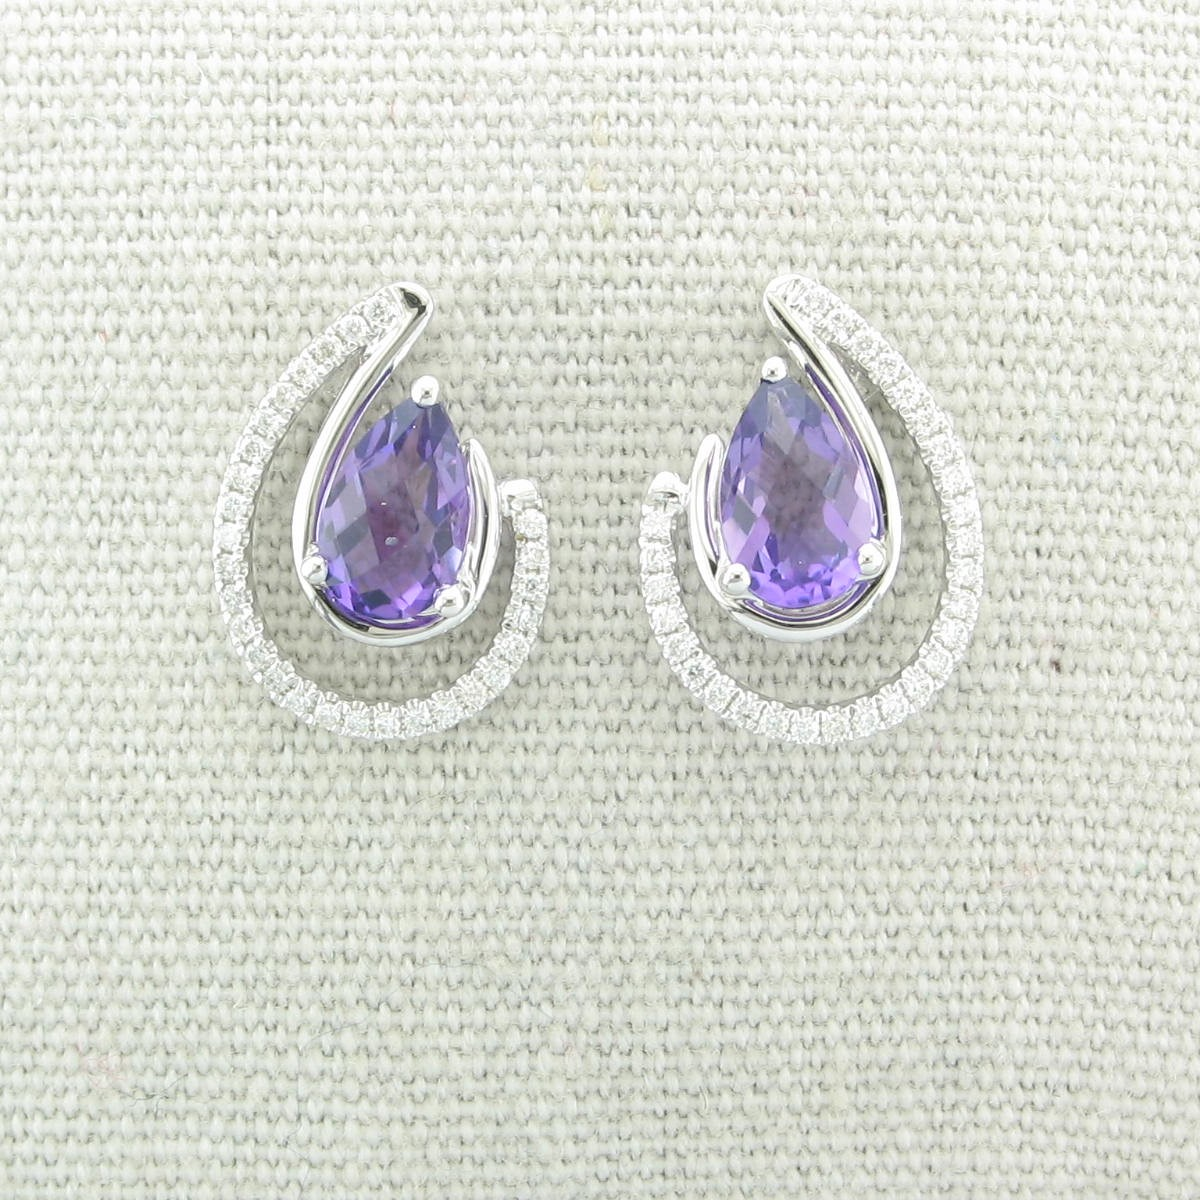 1.52tcw Amethyst and Diamond Earrings set in 14k White Gold